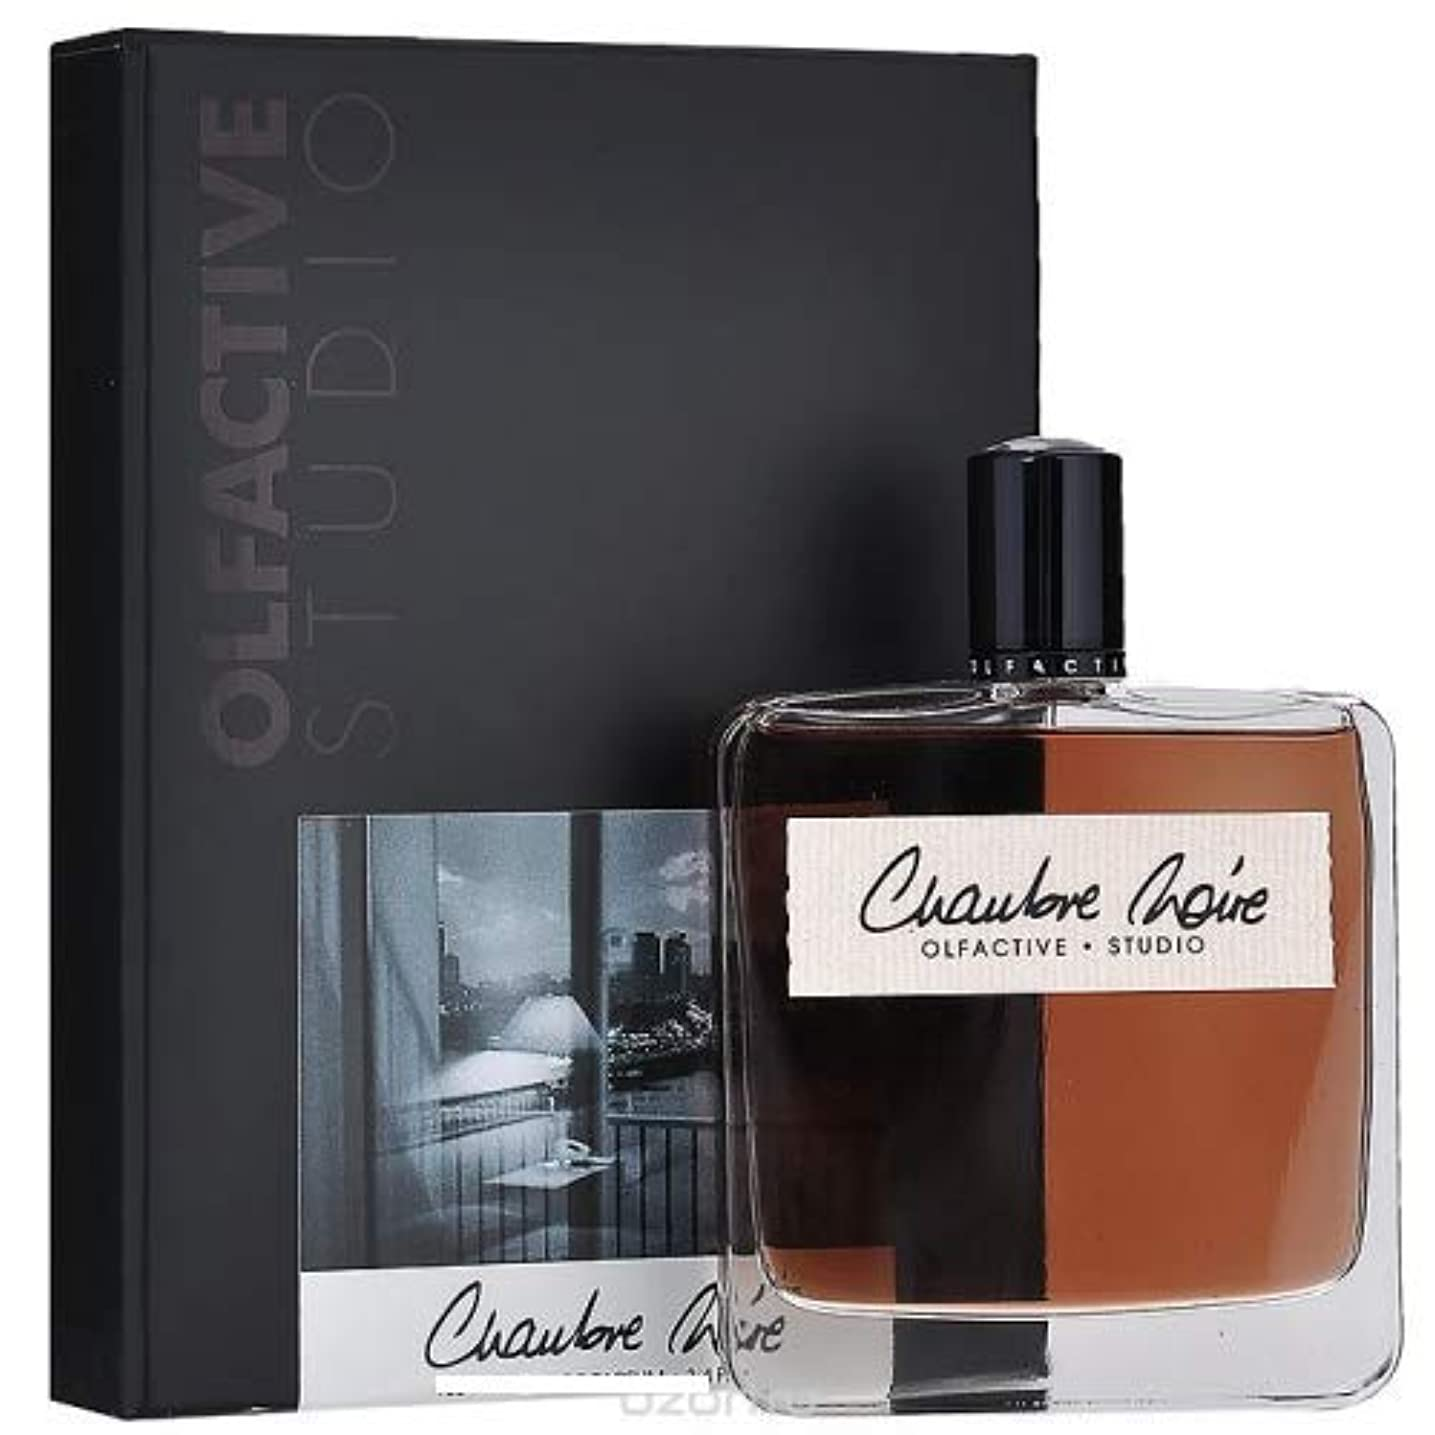 使用法明るくする先生Olfactive Studio Chambre Noir Eau de Parfum 1.7 oz./50 ml New in Box